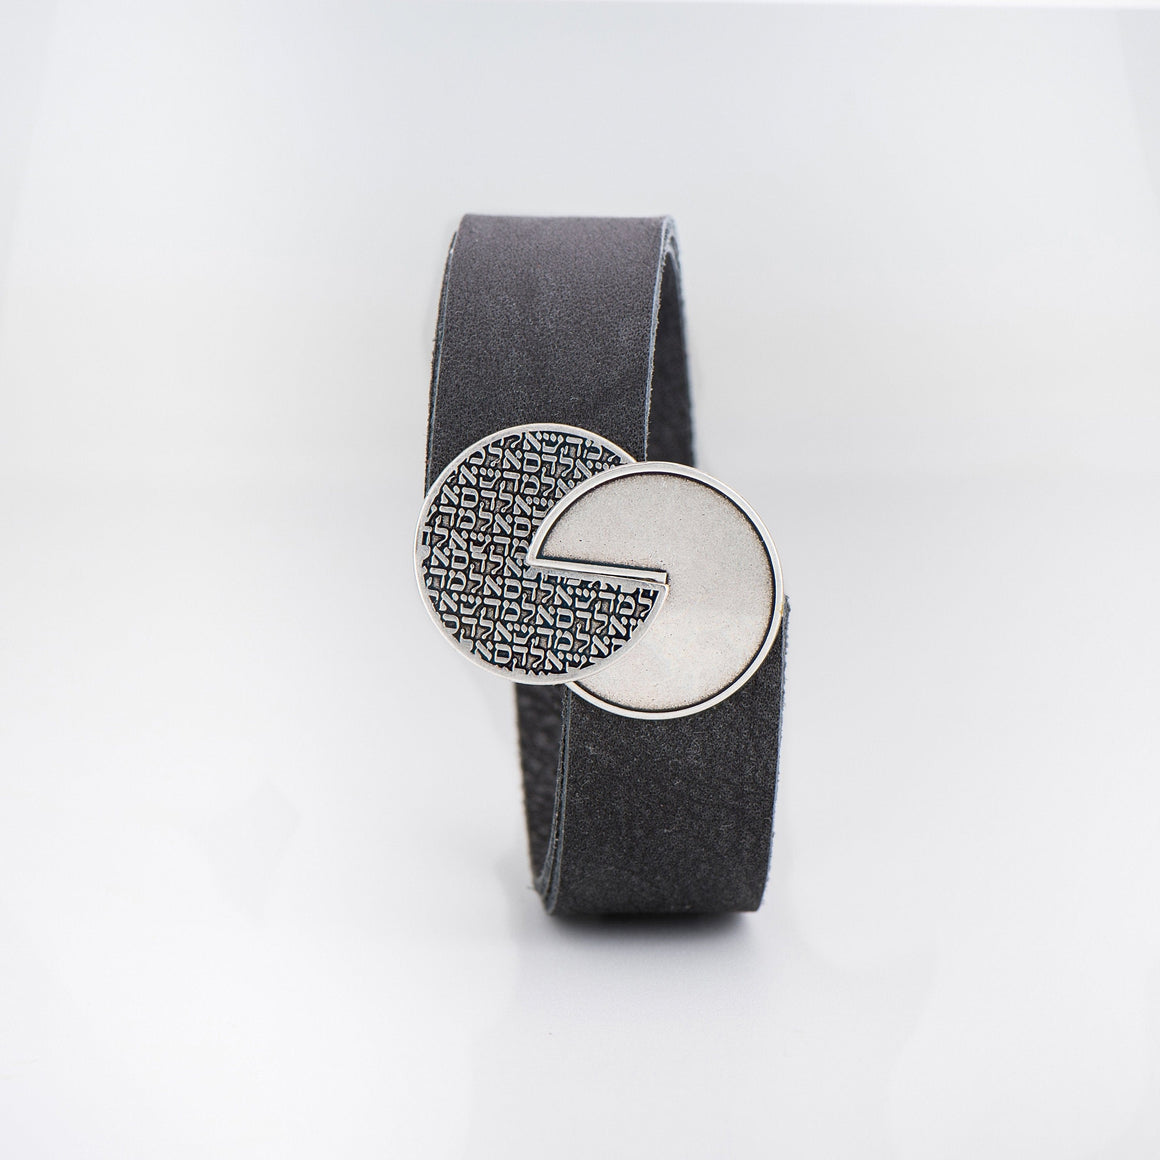 Men's Bracelet, Leather Bracelet, Silver Bracelet,